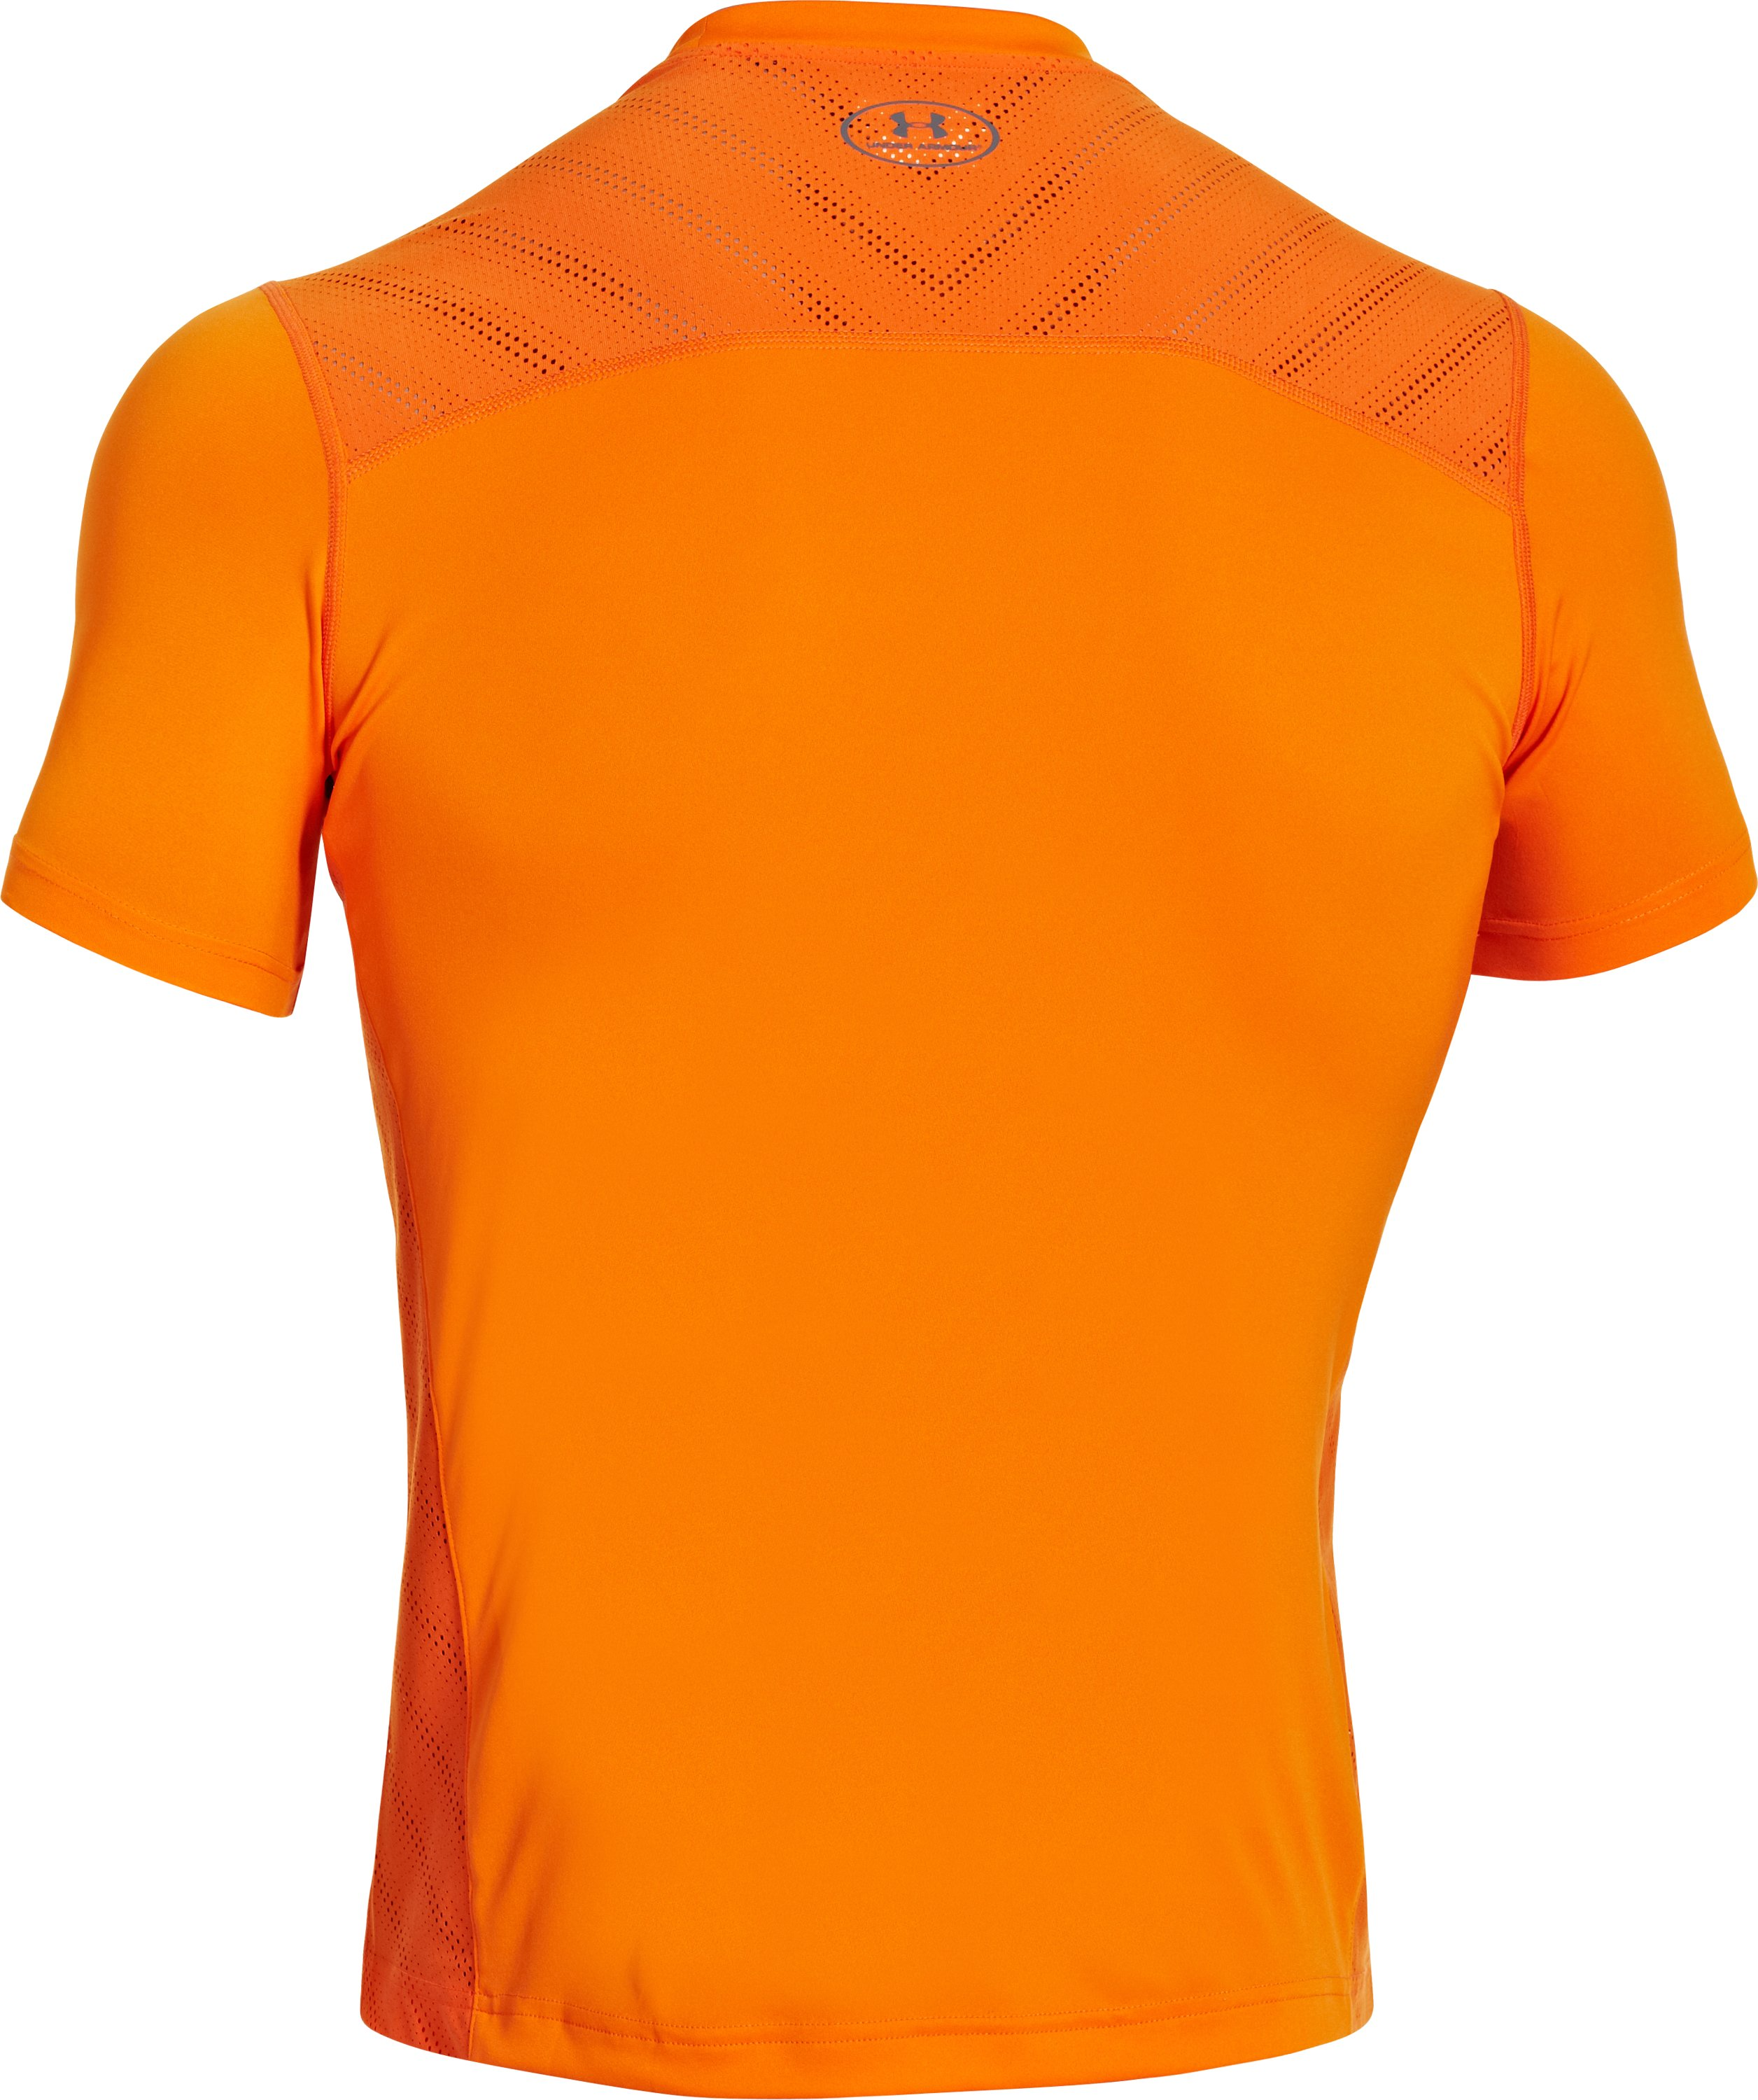 Men's HeatGear® ArmourVent™ Training T-Shirt, OUTRAGEOUS ORANGE